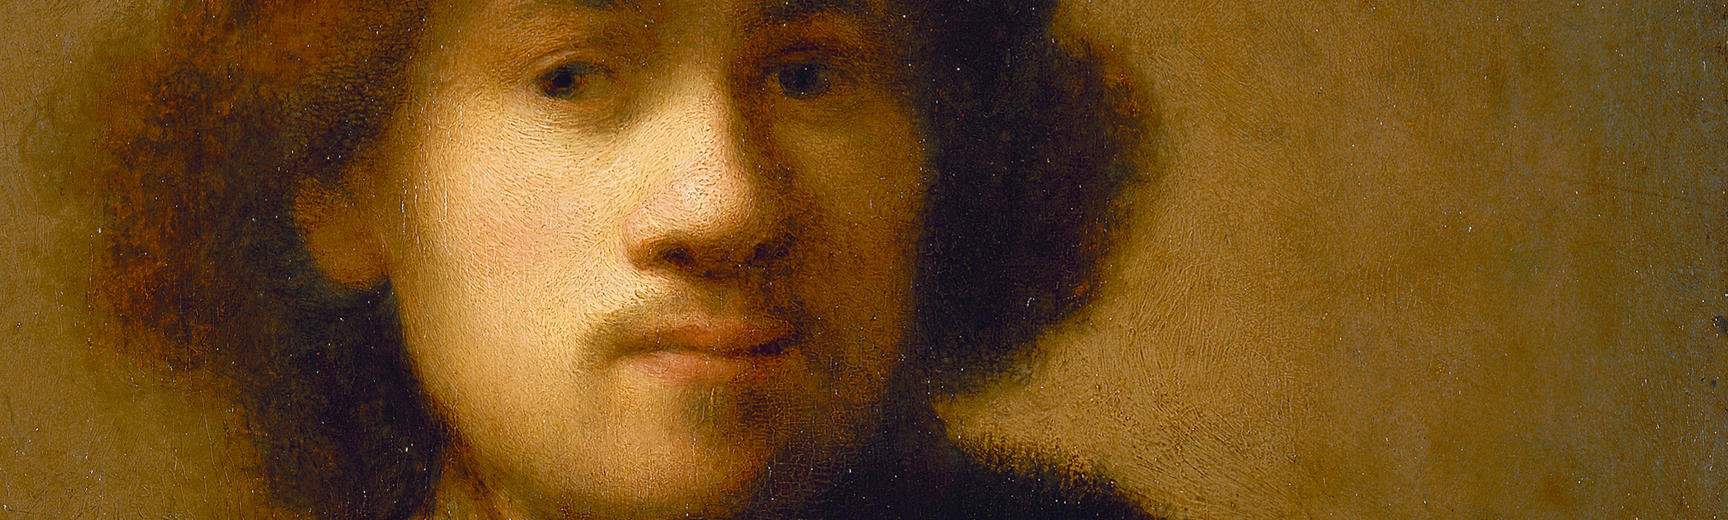 Detail from a painted self portrait of a young Rembrandt